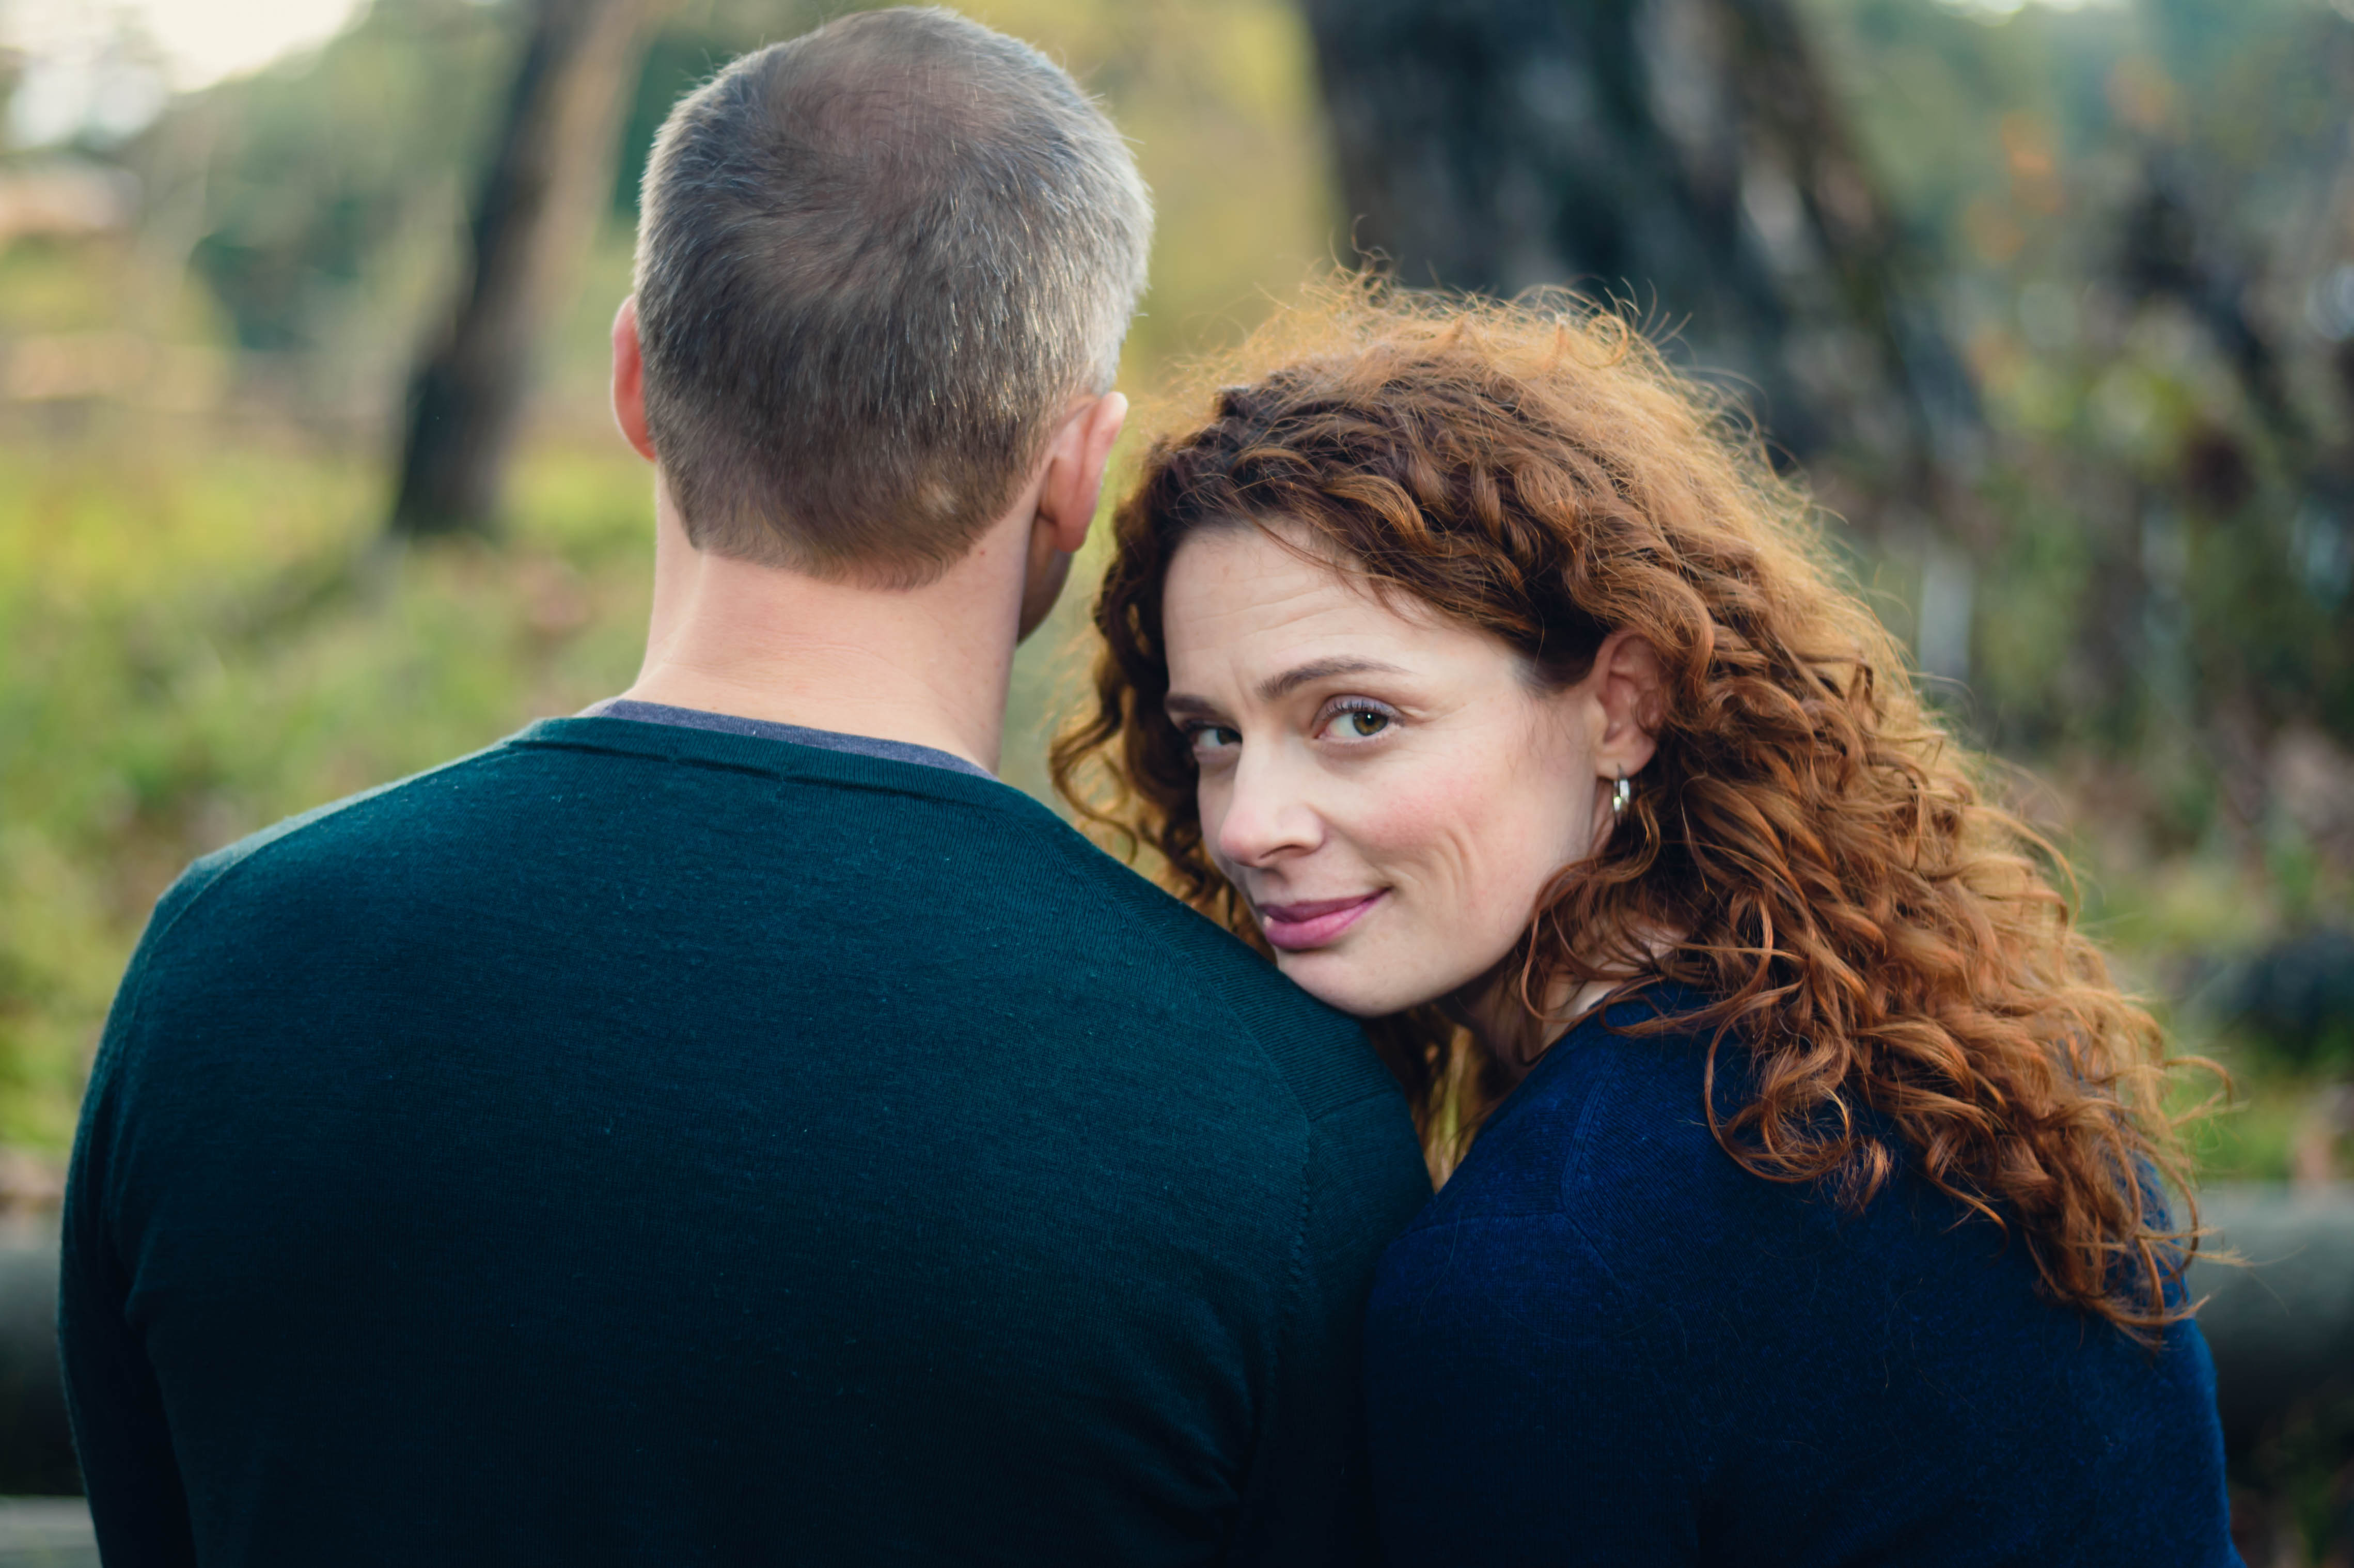 neilson family photography photographer outdoors bay area cupertino mcclellan ranch couples